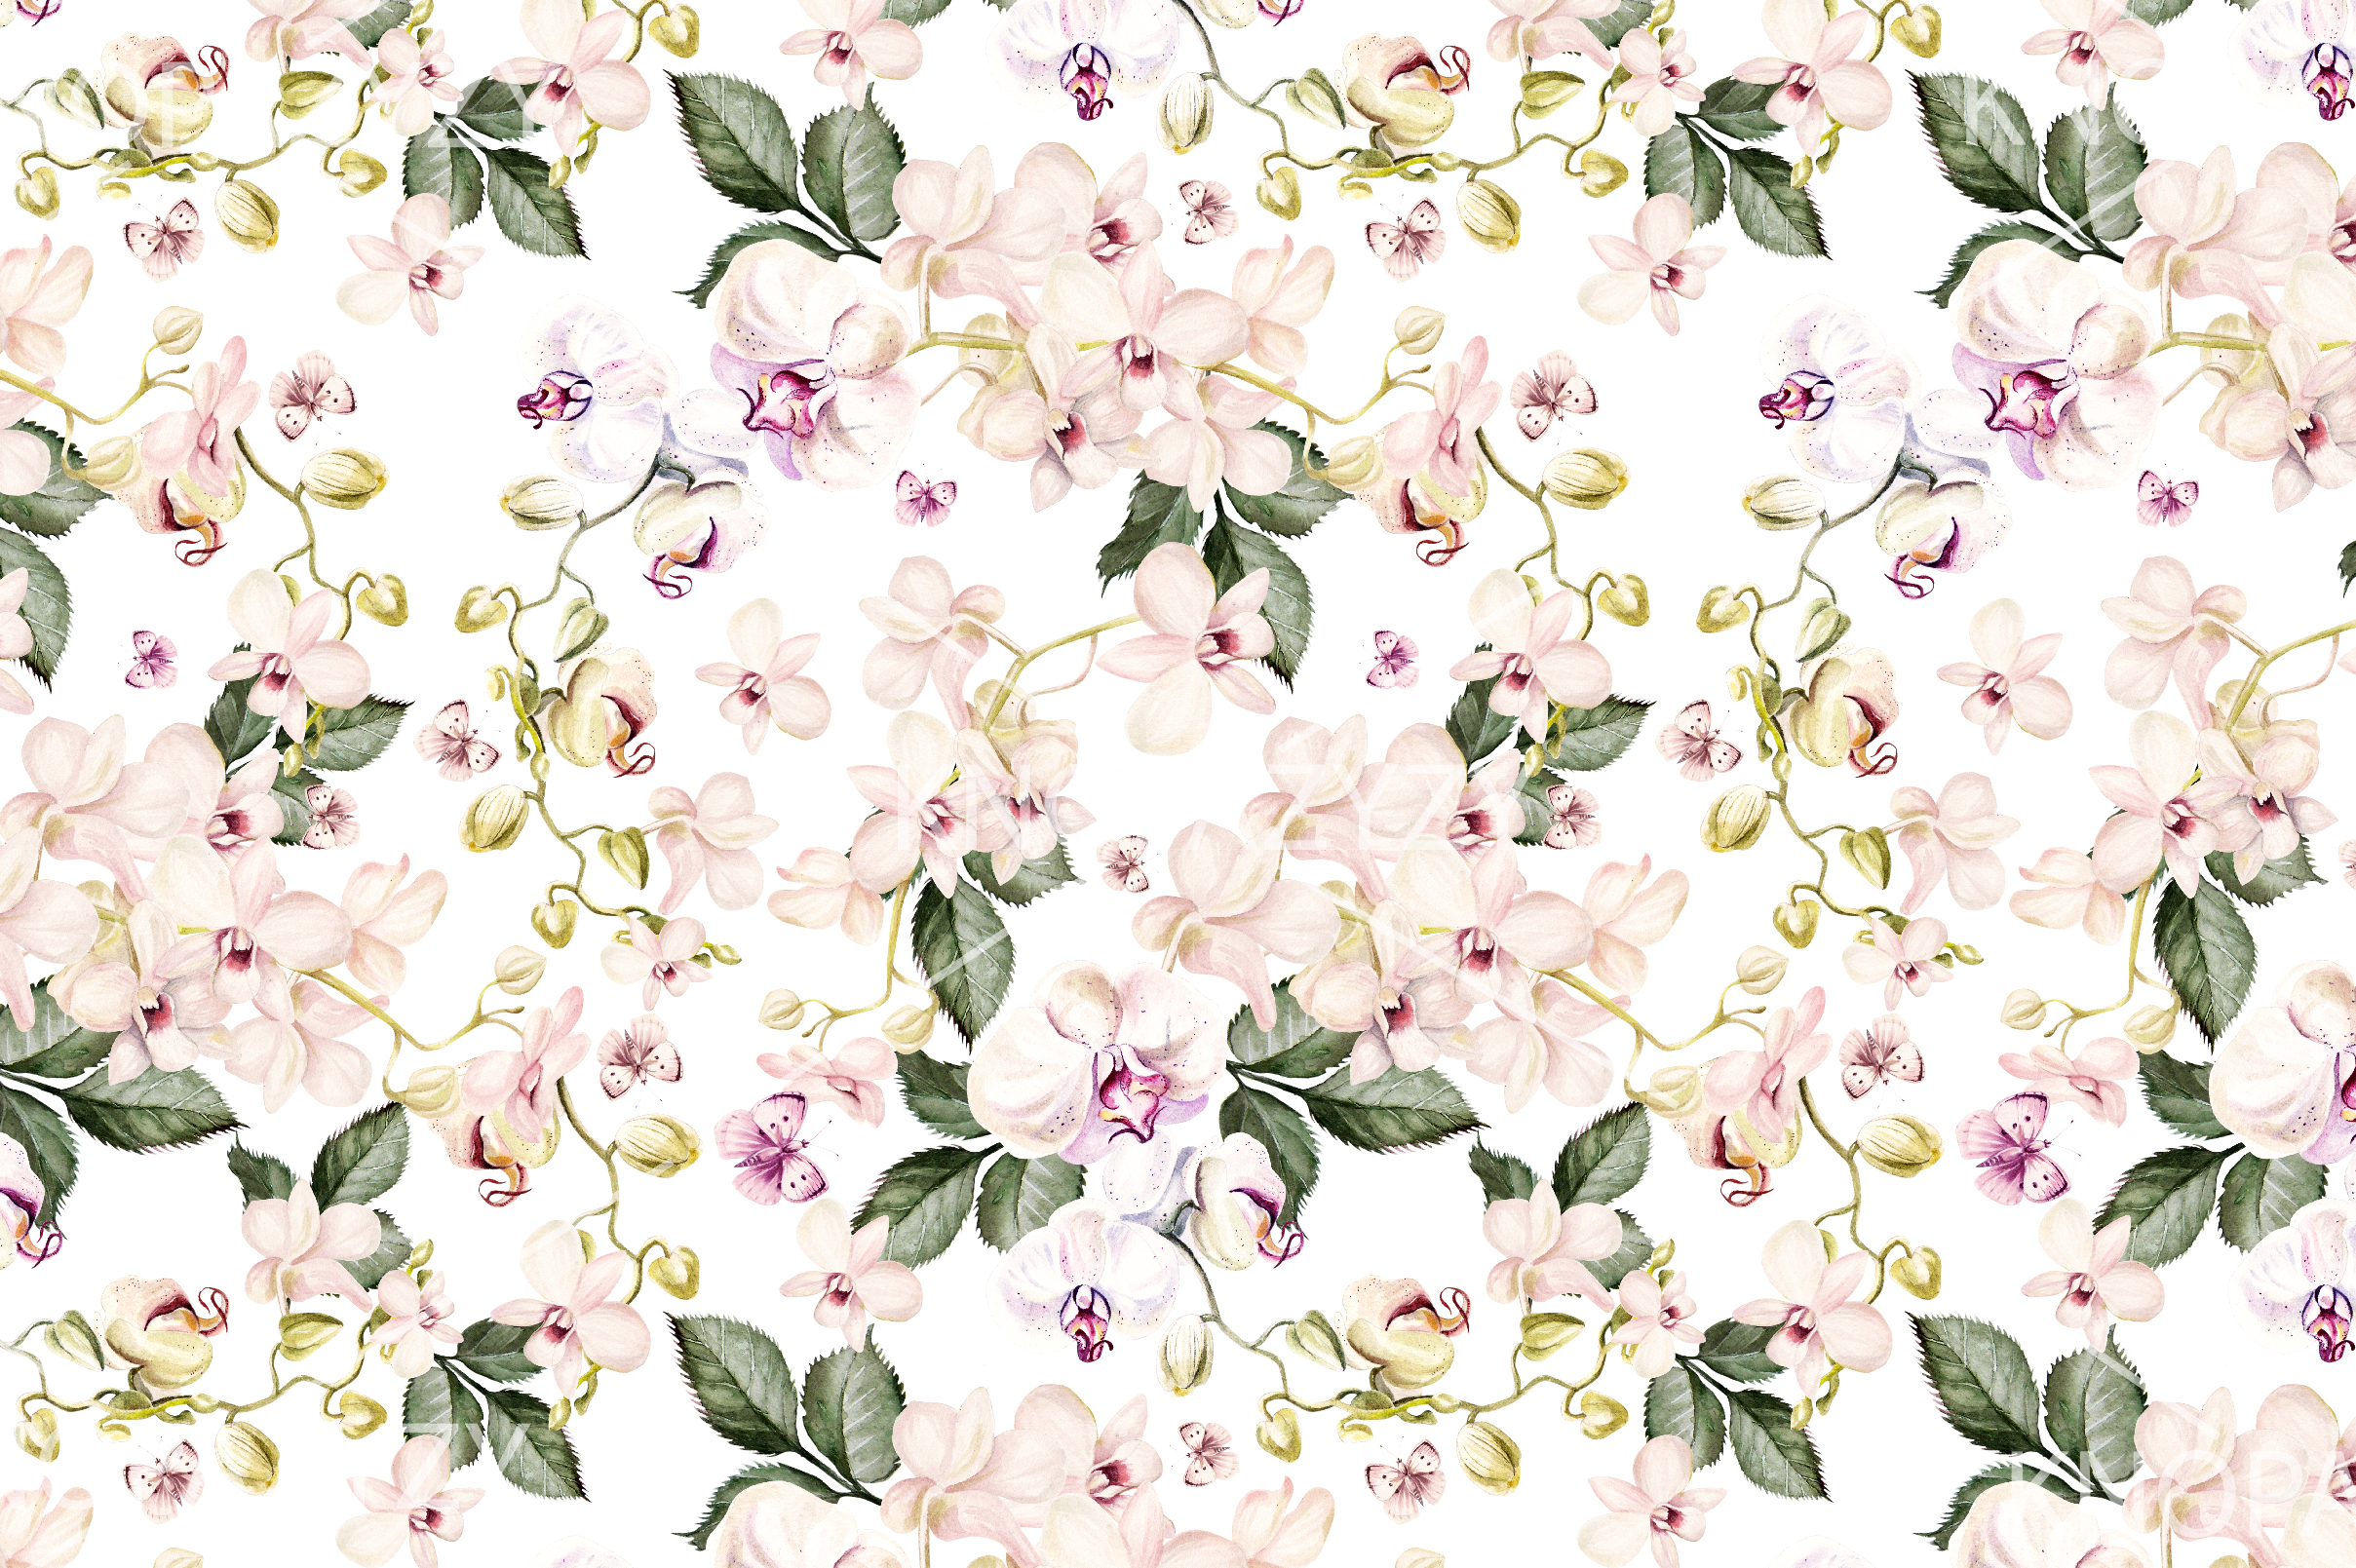 10 Hand Drawn Watercolor Pattern example image 4